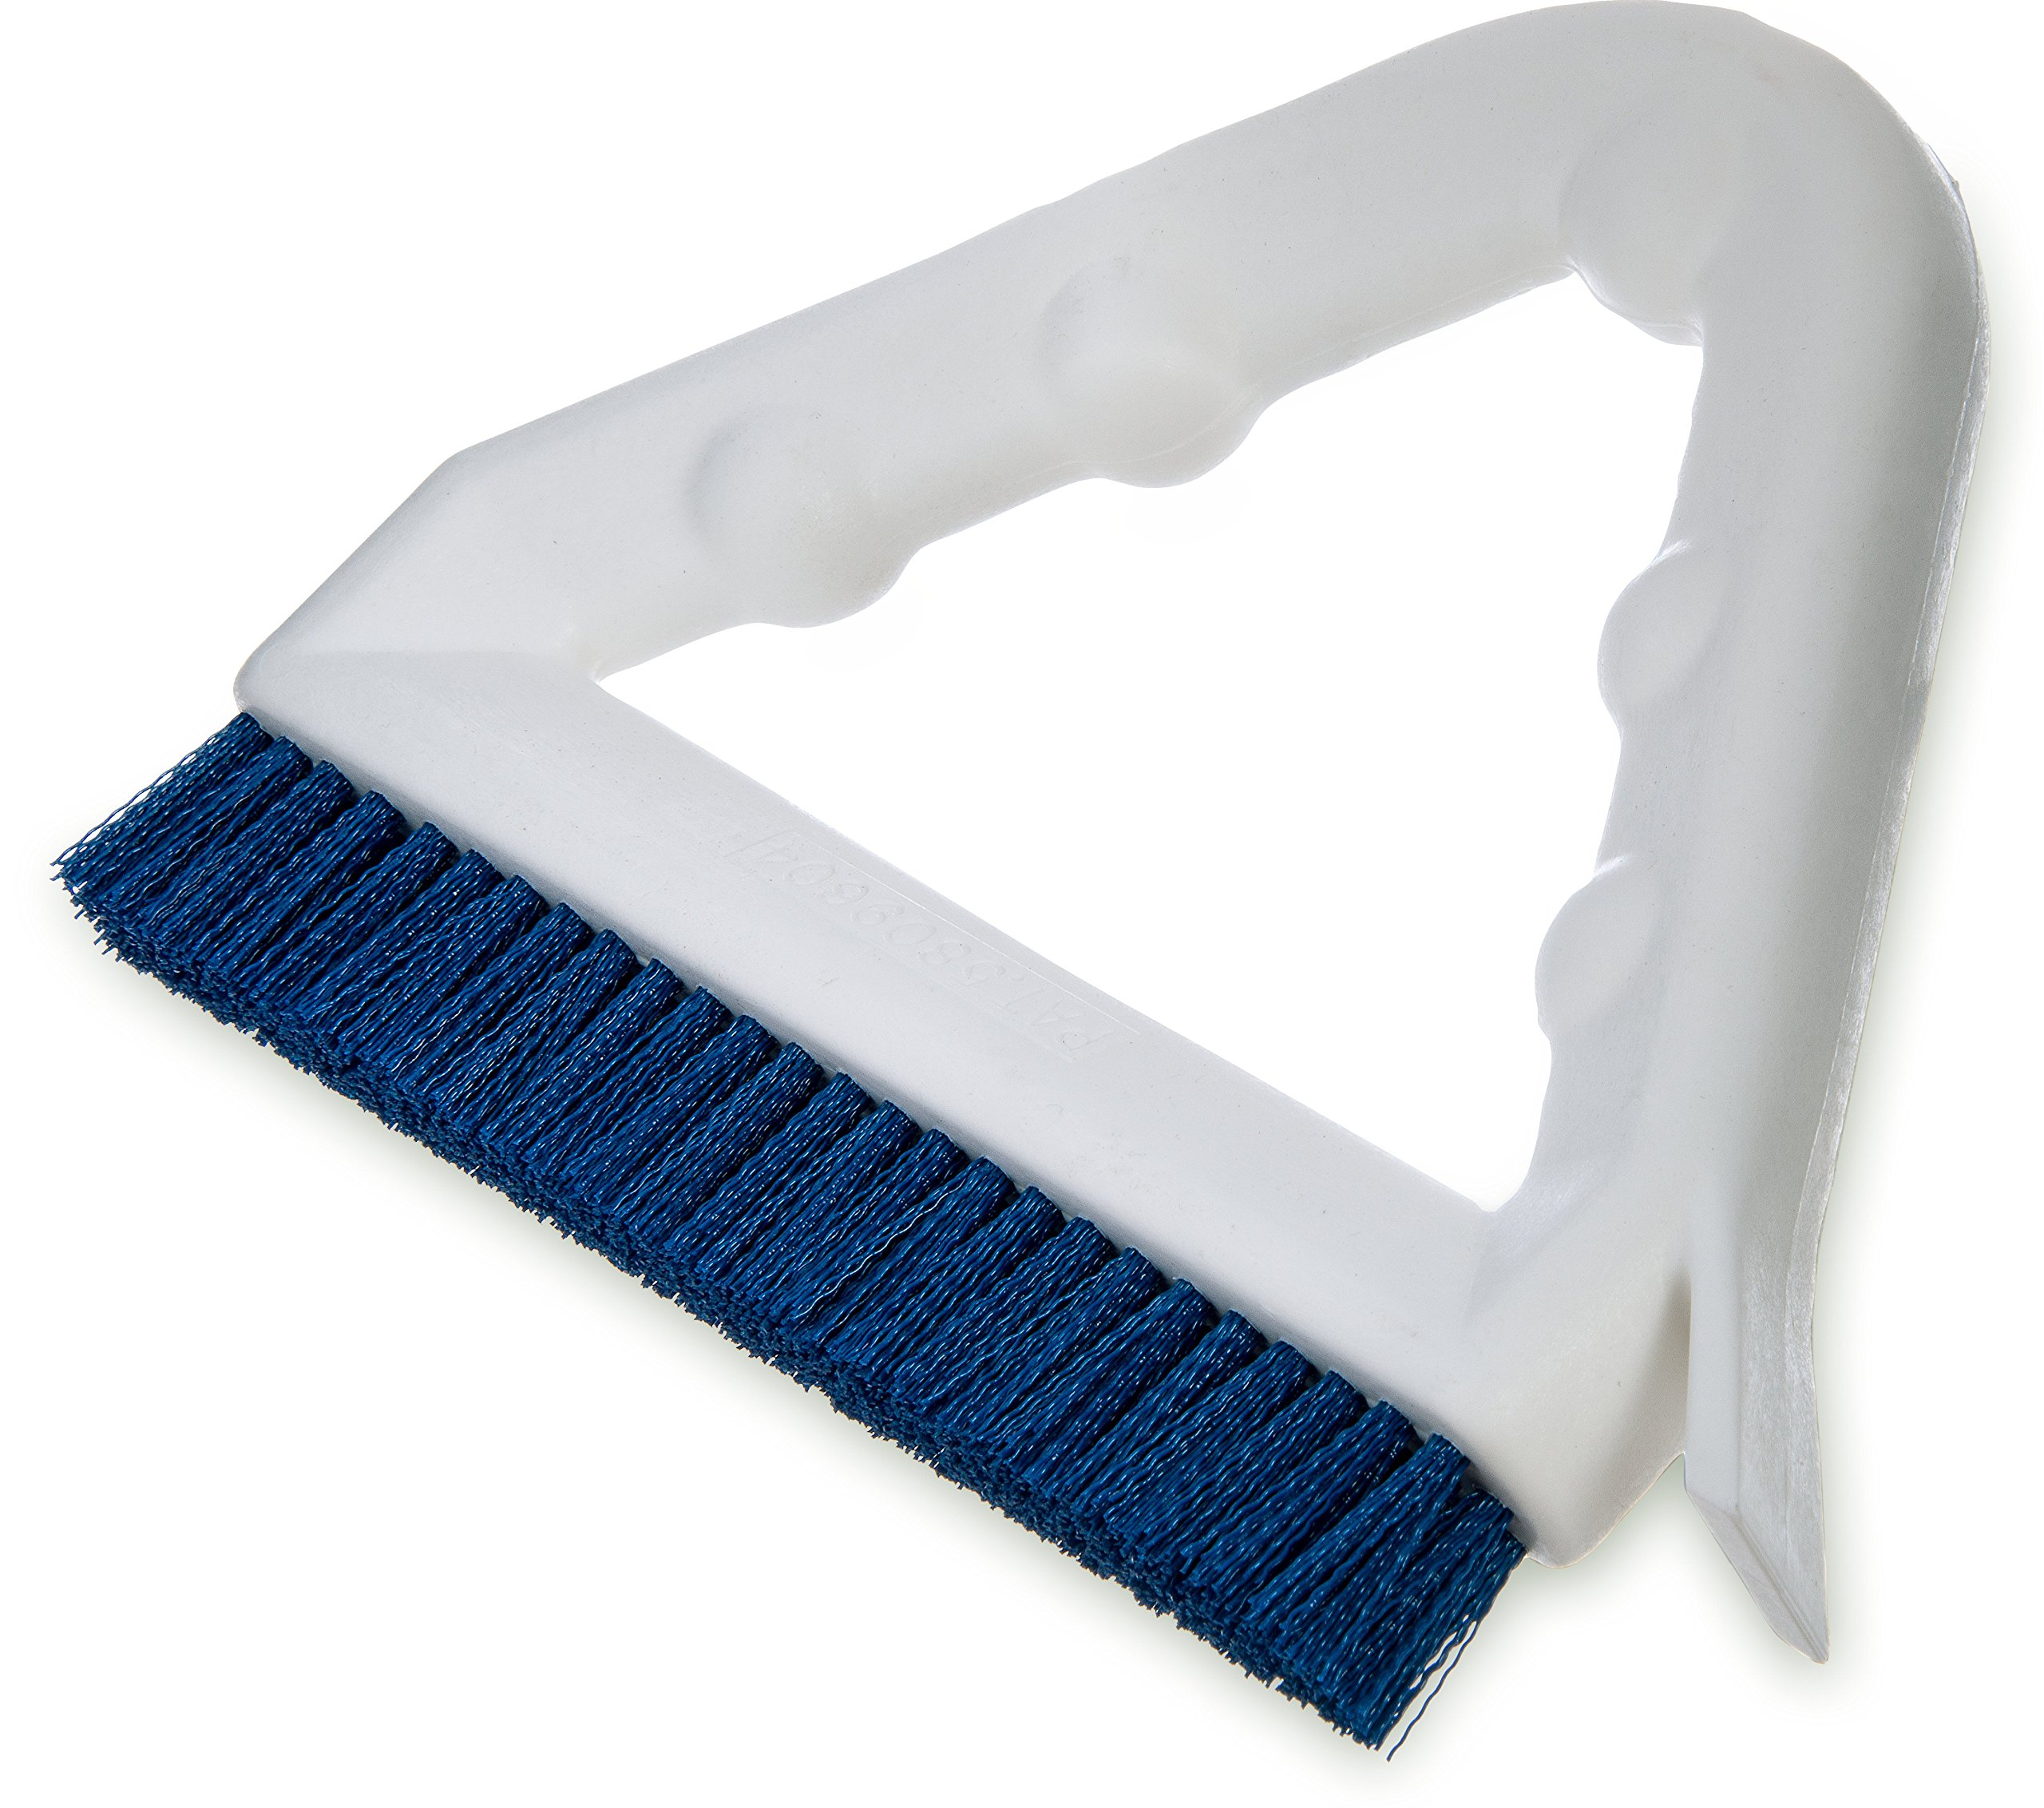 Carlisle 4132314 Sparta Tile and Grout Brush with Scraper, 9'', Blue